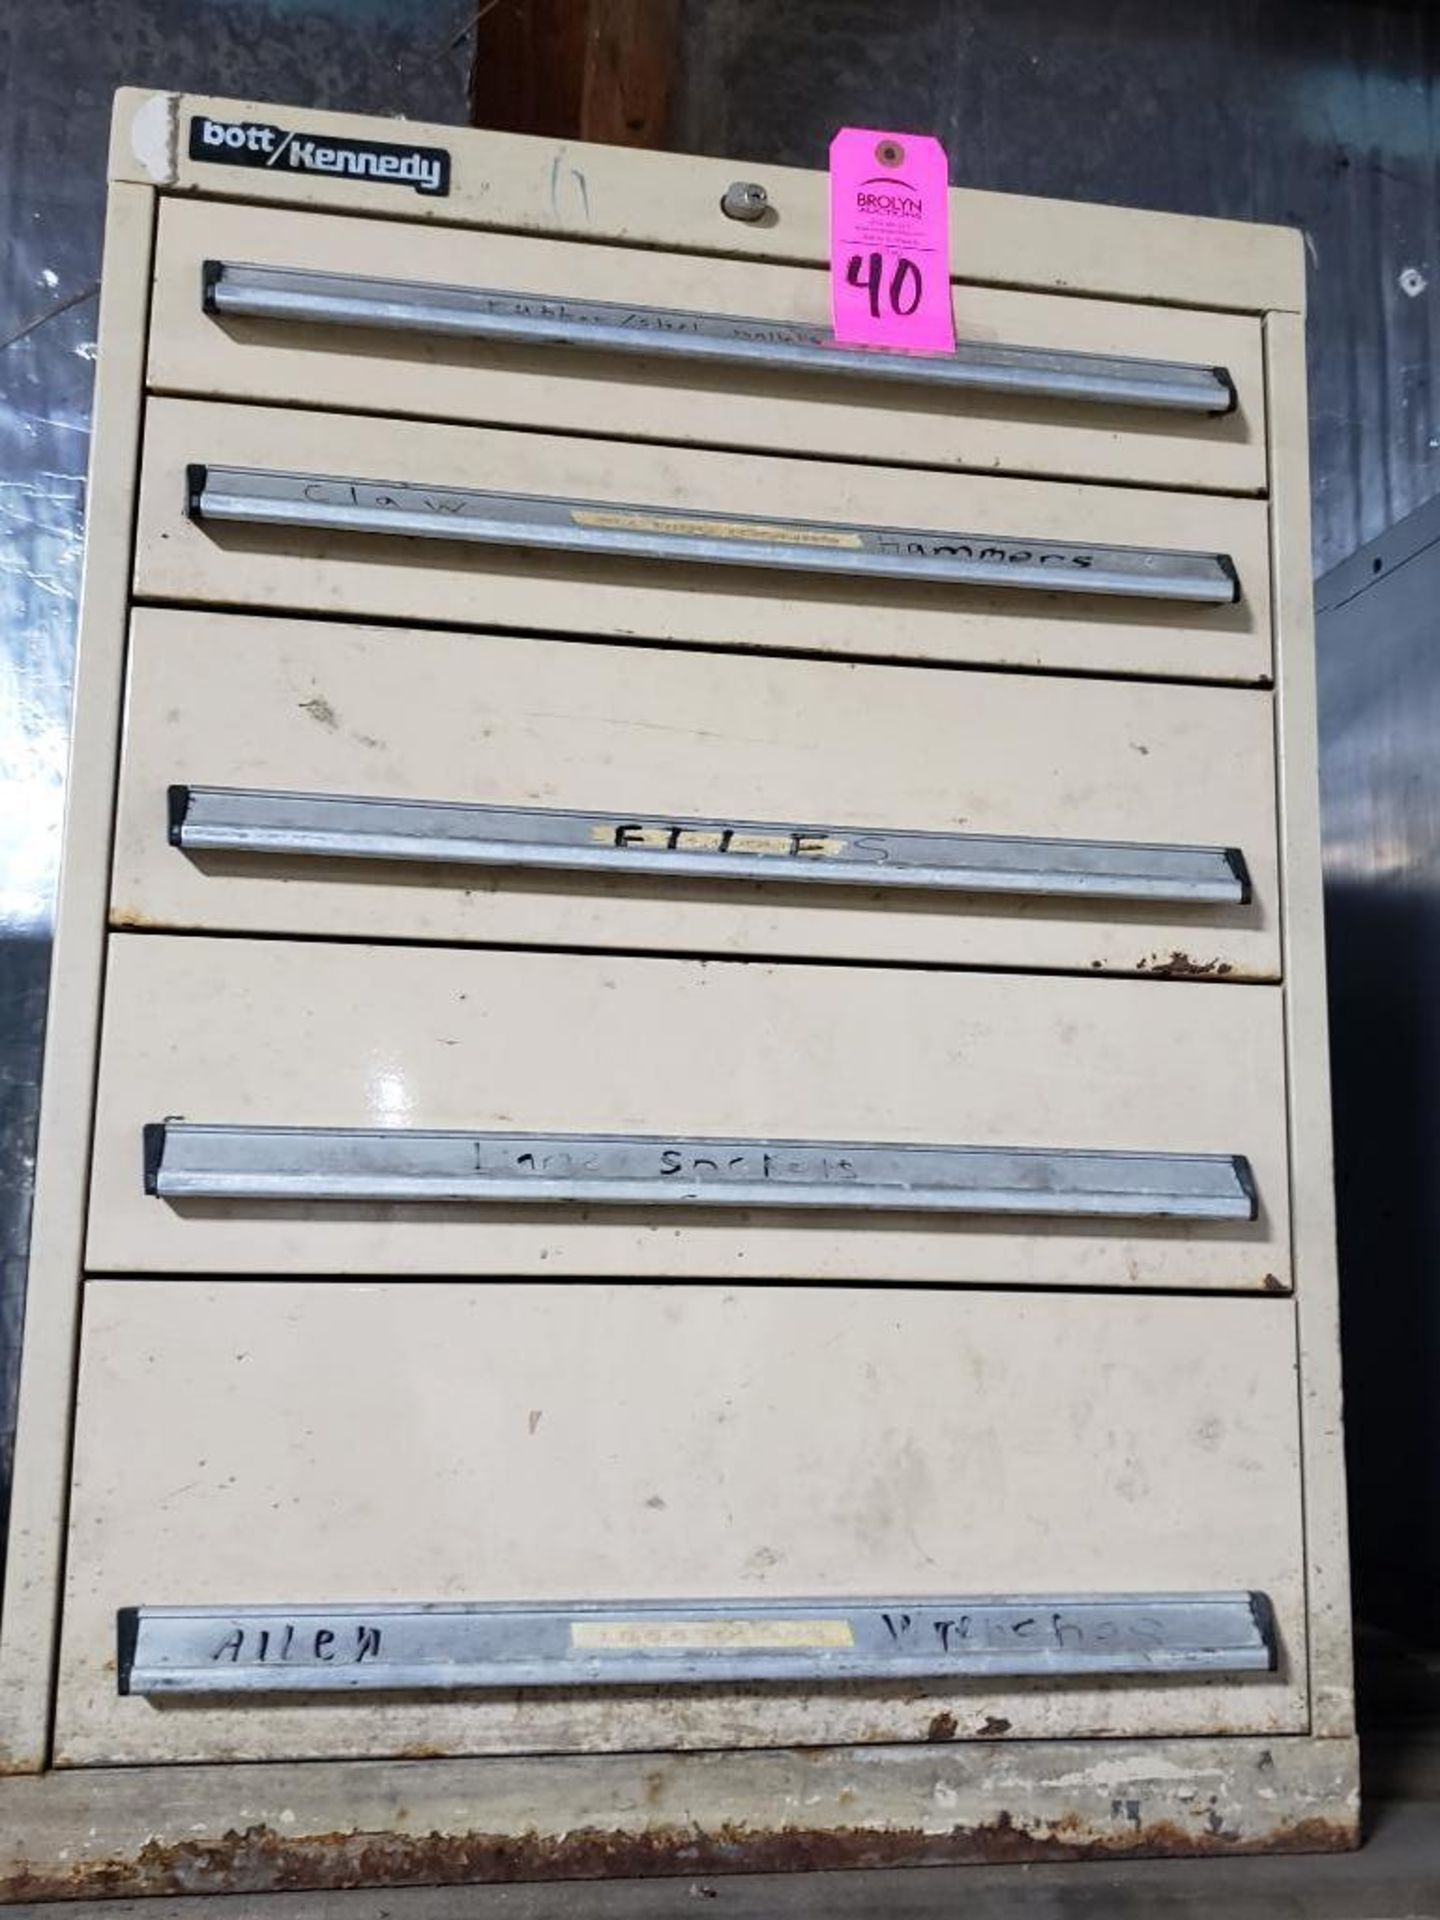 Lot 40 - 5 drawer Bott Kennedy tool cabinet. Overall dimensions 31.5Tx23.5Wx24D.